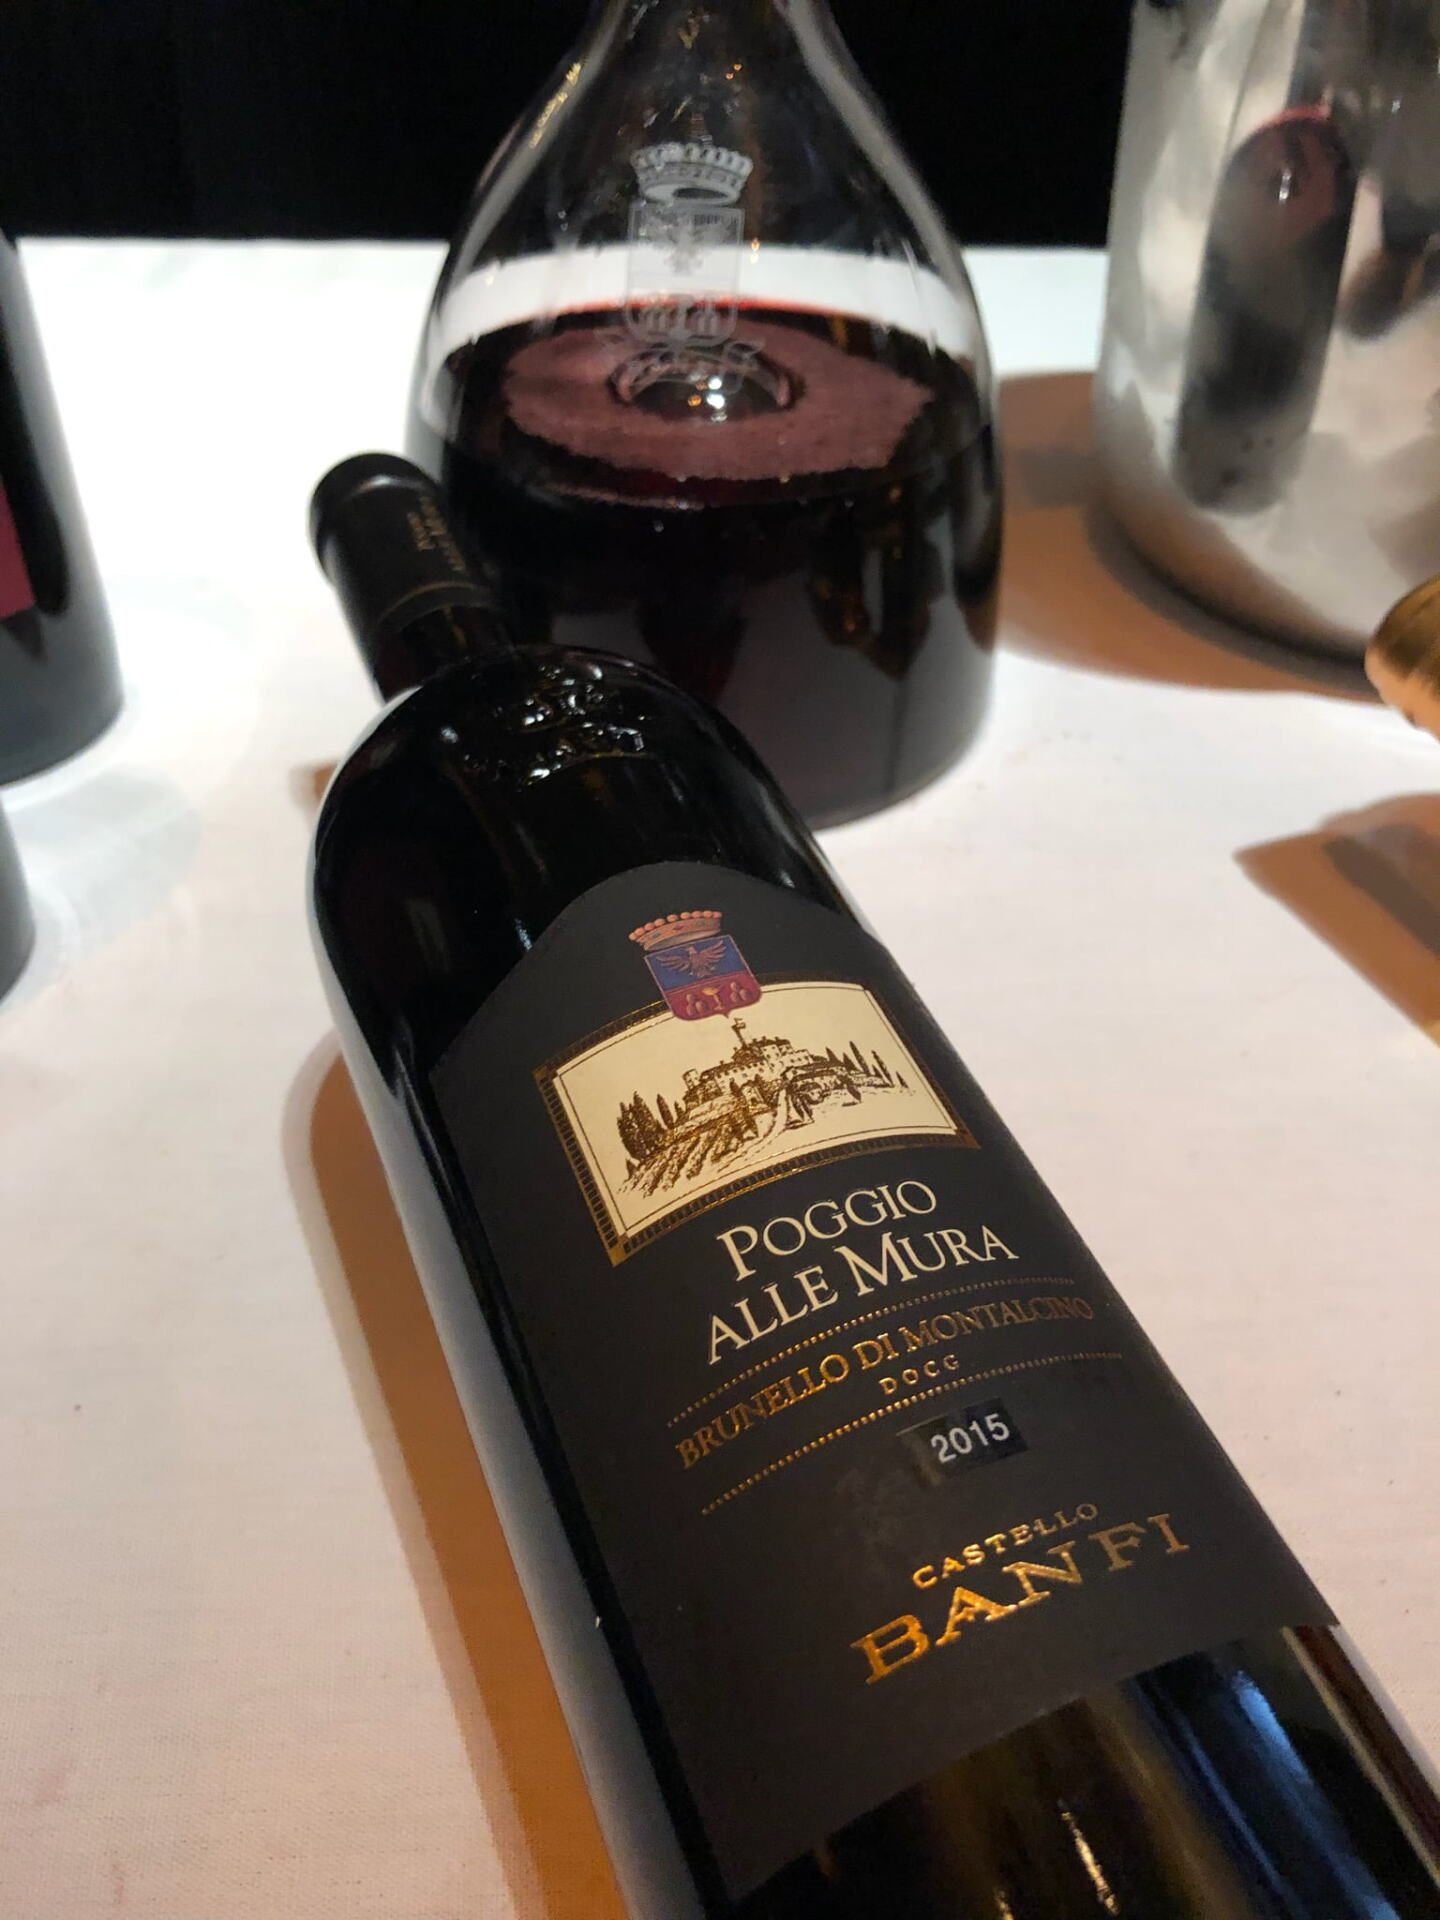 Bottle of Brunello and a decanter